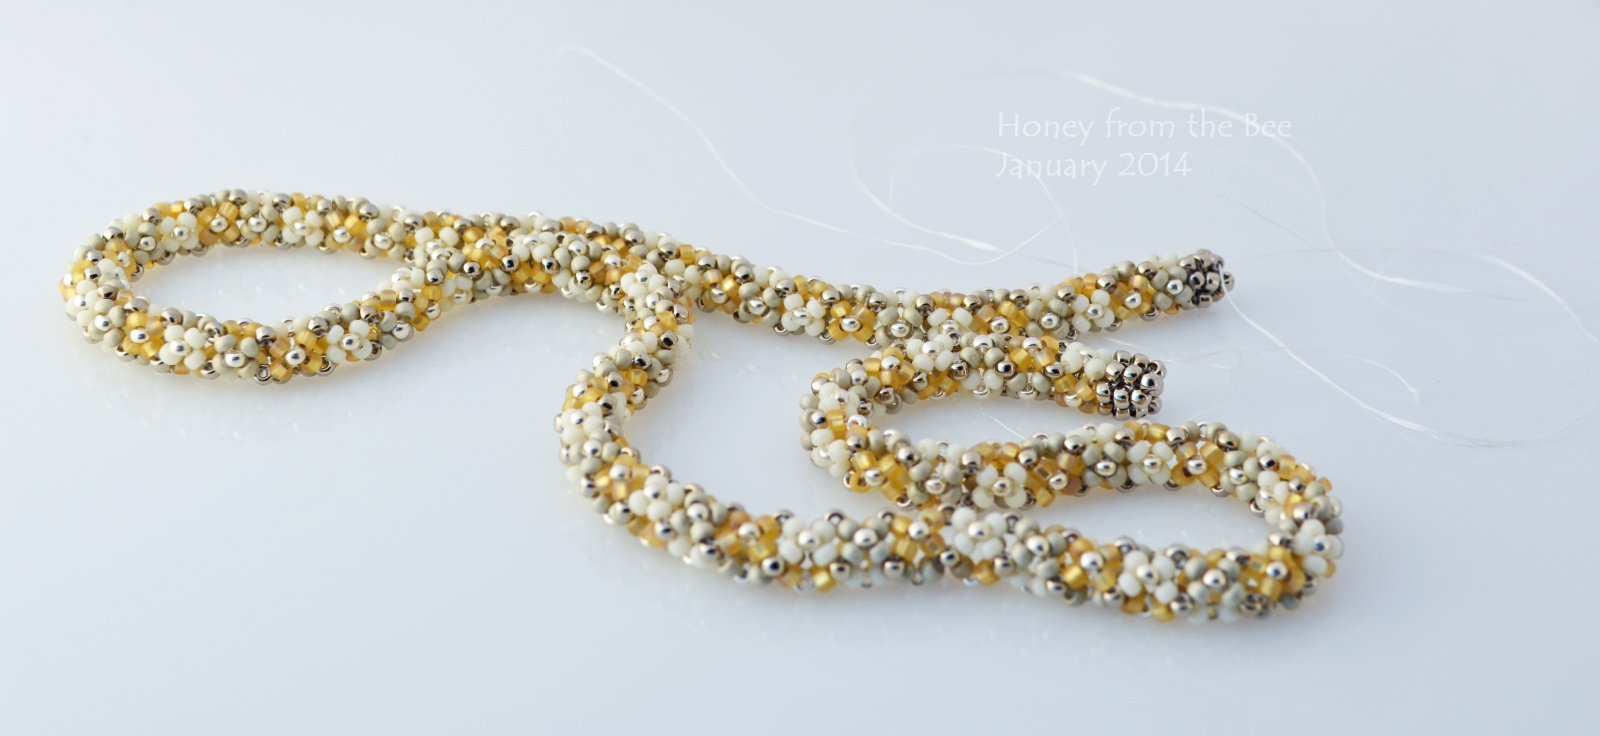 Chenille Stitch seed bead necklace